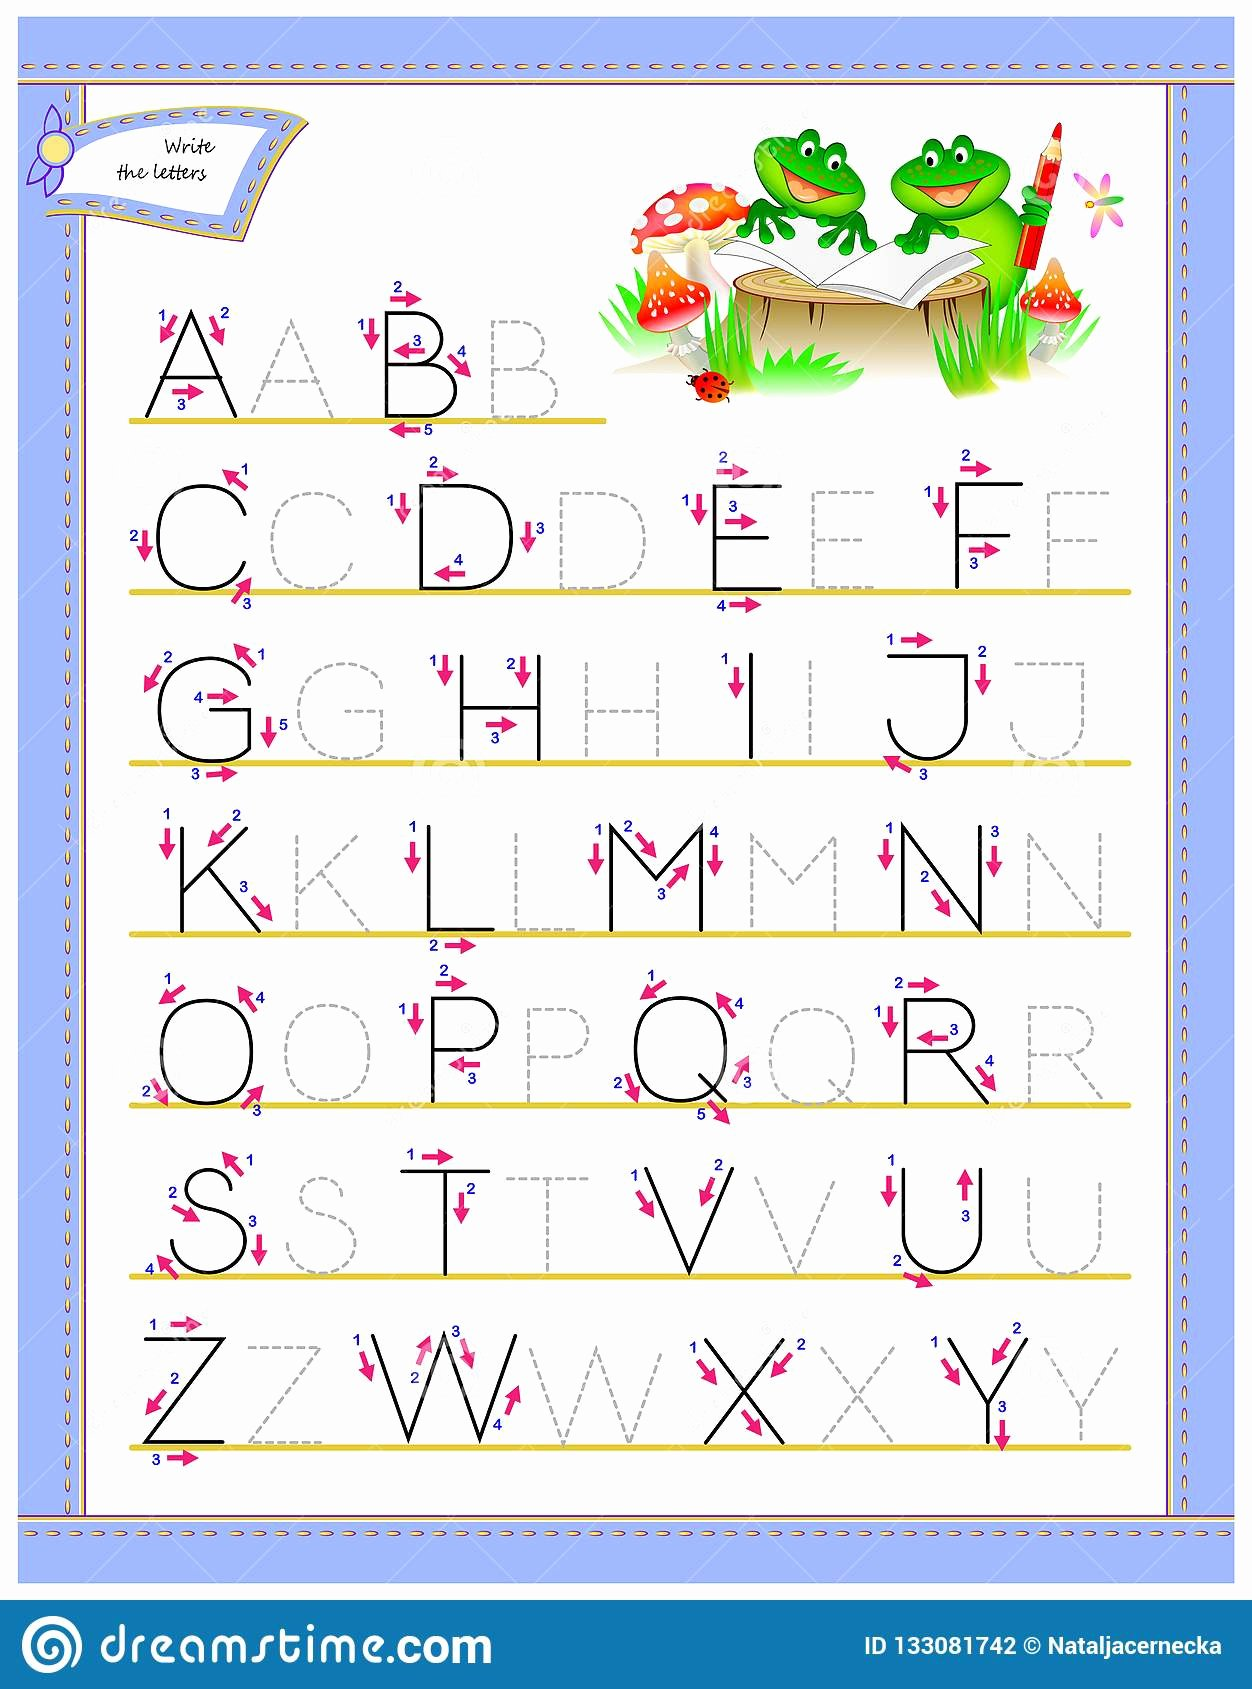 English Alphabet Worksheets for Preschoolers top Math Worksheet Englishlphabets Writing Practice Worksheets